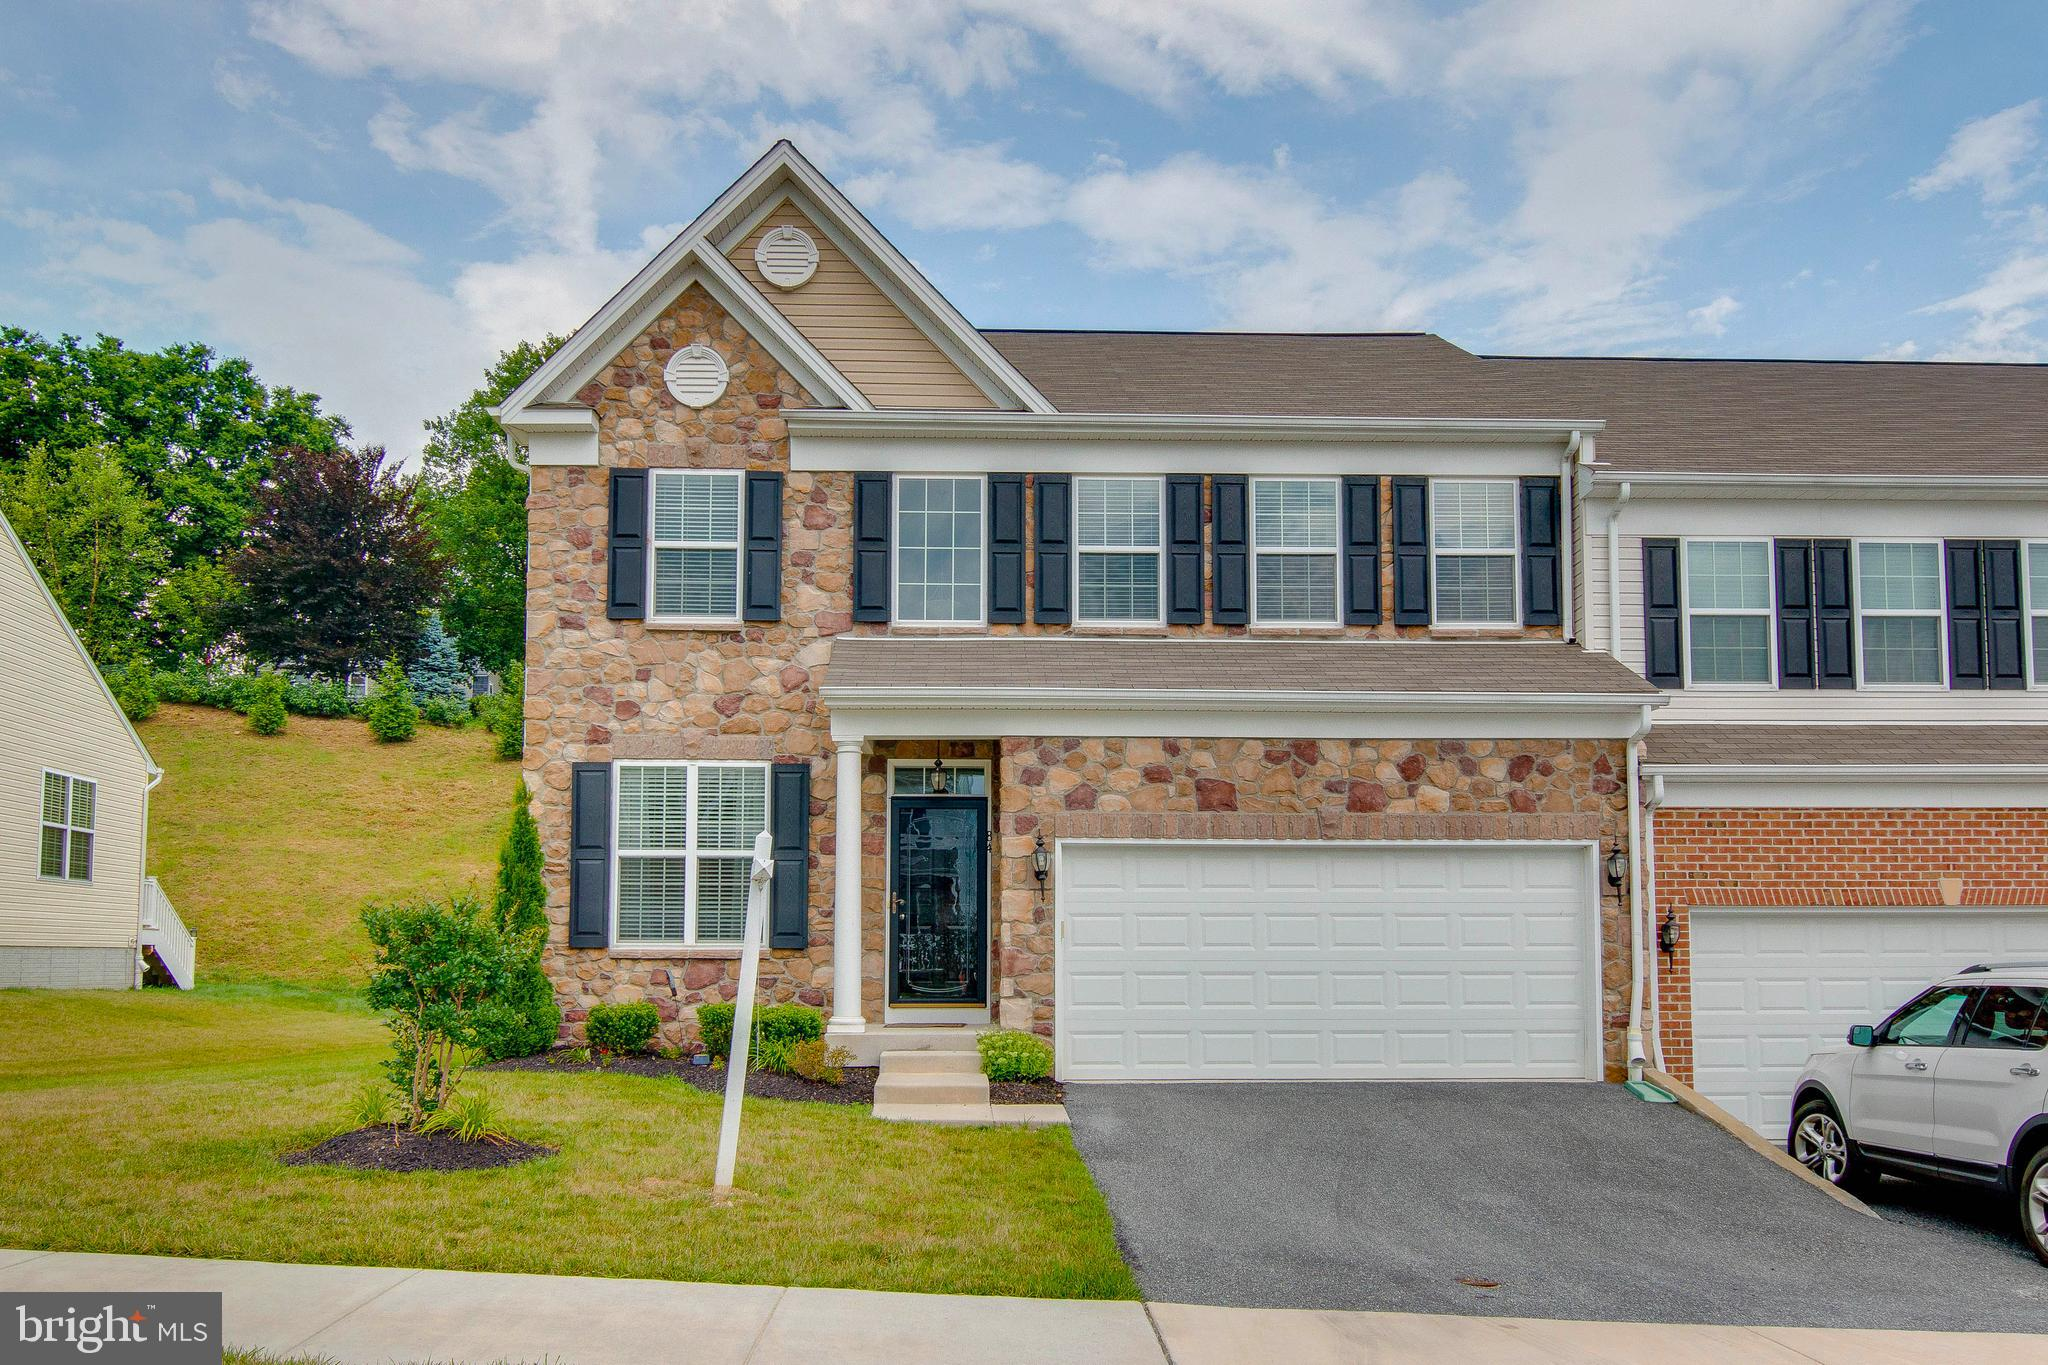 84 GREENVALE MEWS DRIVE 36, WESTMINSTER, MD 21157